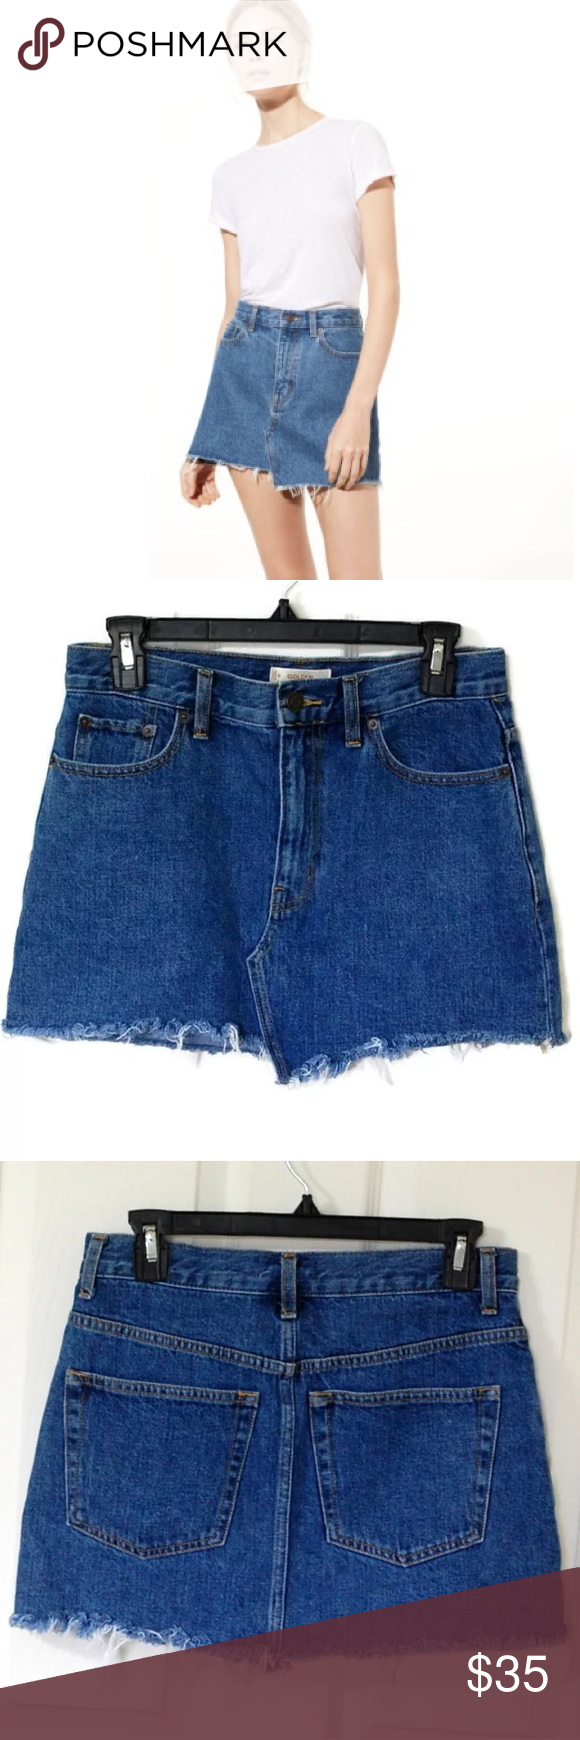 9c6b23152 Golden by TNA Aritzia Testani Denim Skirt Golden by TNA Testani Skirt  Color: Blue Size: 6 Gently used condition. No stains or tears.